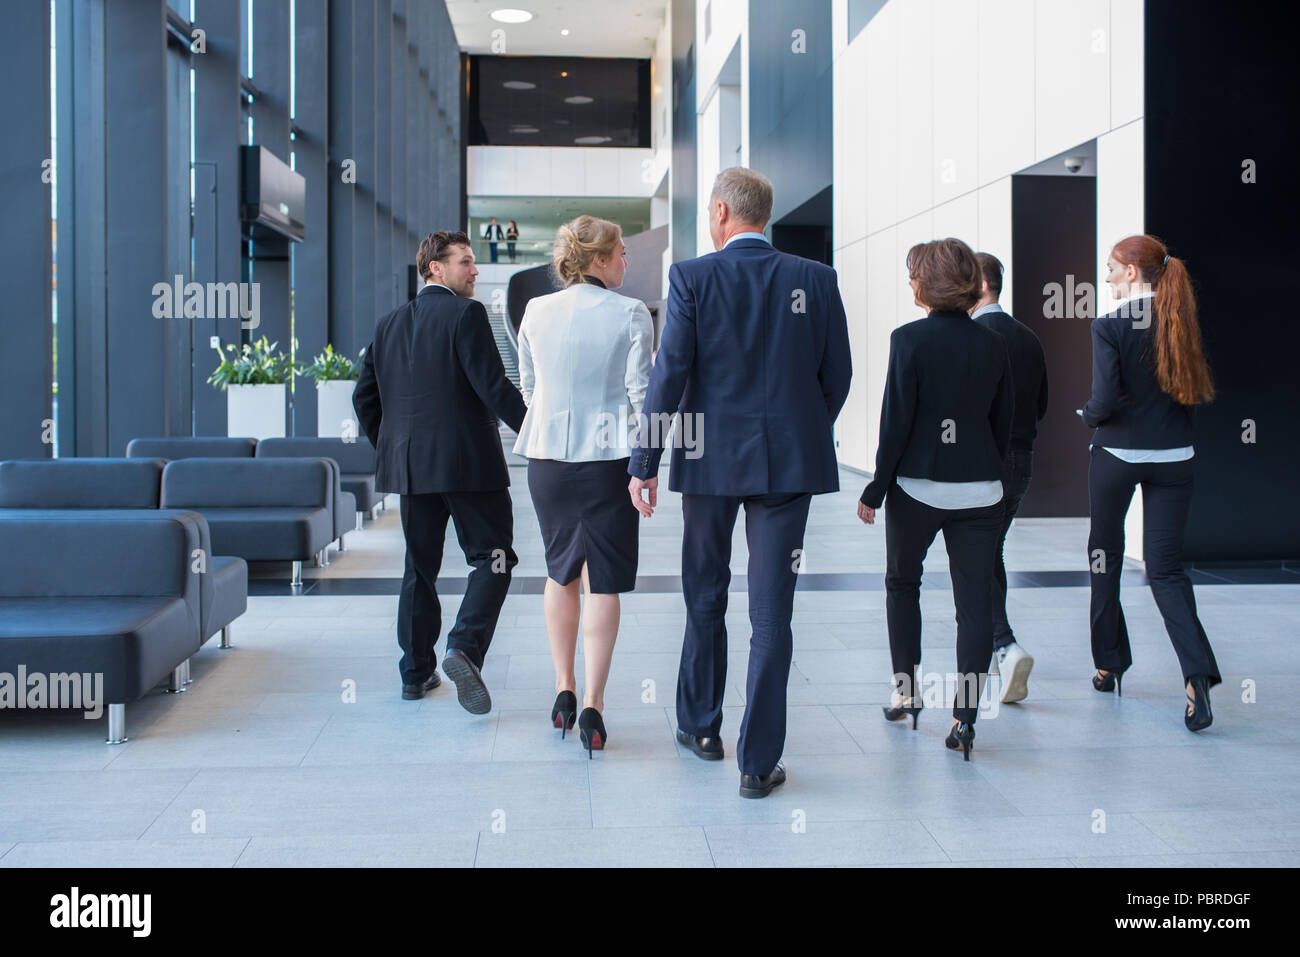 Lively business team walking together in office builging showing teamwork, togetherness and liveliness - Stock Image